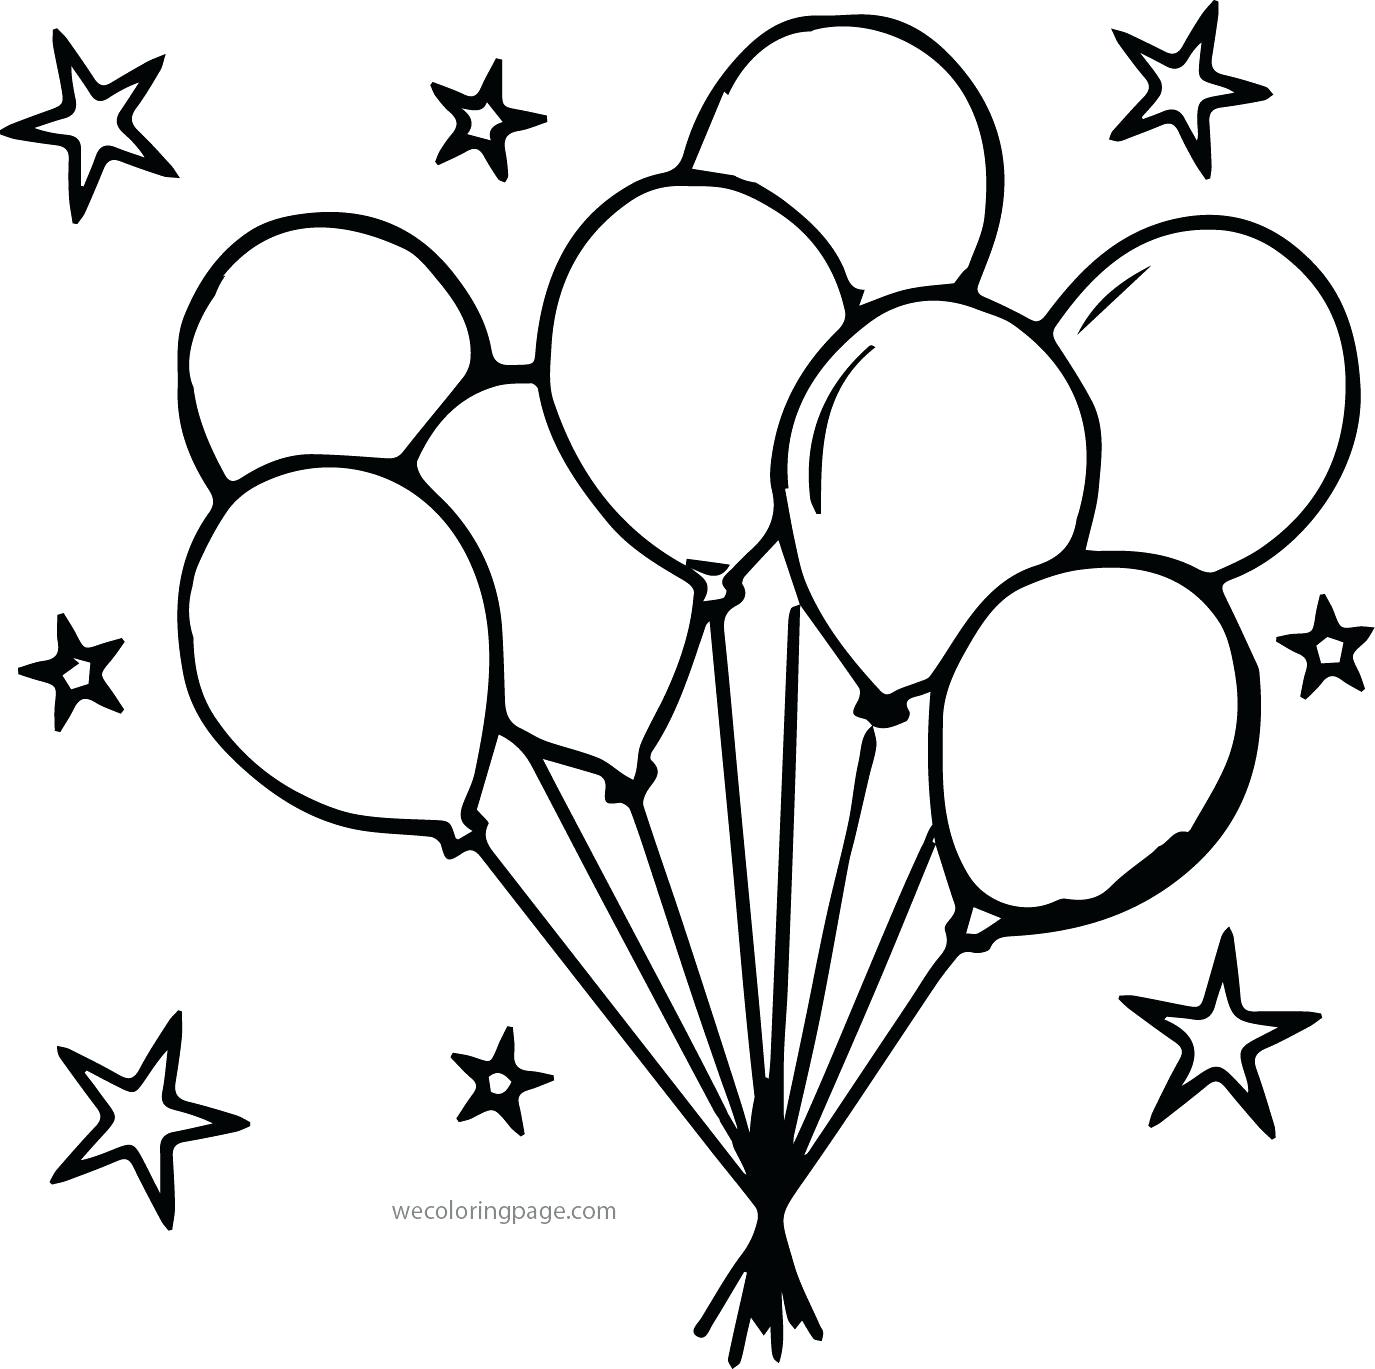 1375x1369 Coloring Page Stars Coloring Page Pages Ninja Stars Coloring